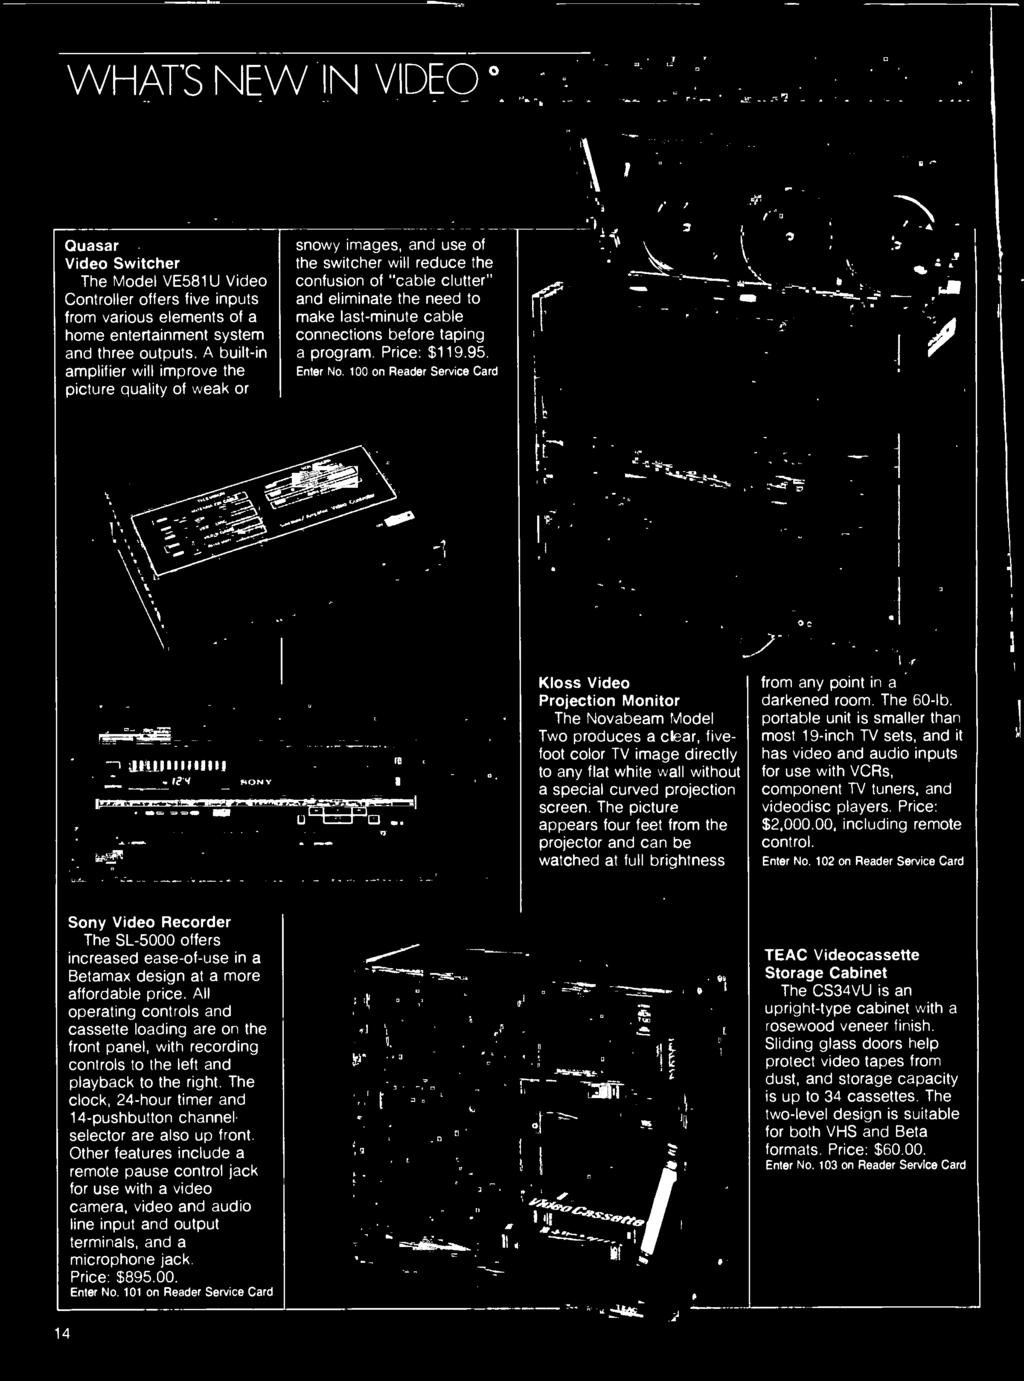 Maintenance Tape Recorder Preamp Interview Jimmy Miller Eviewed The Teac Wiring Color Code Picture Appears Four Feet From Projector And Can Be Watched At Full Brightness Oc